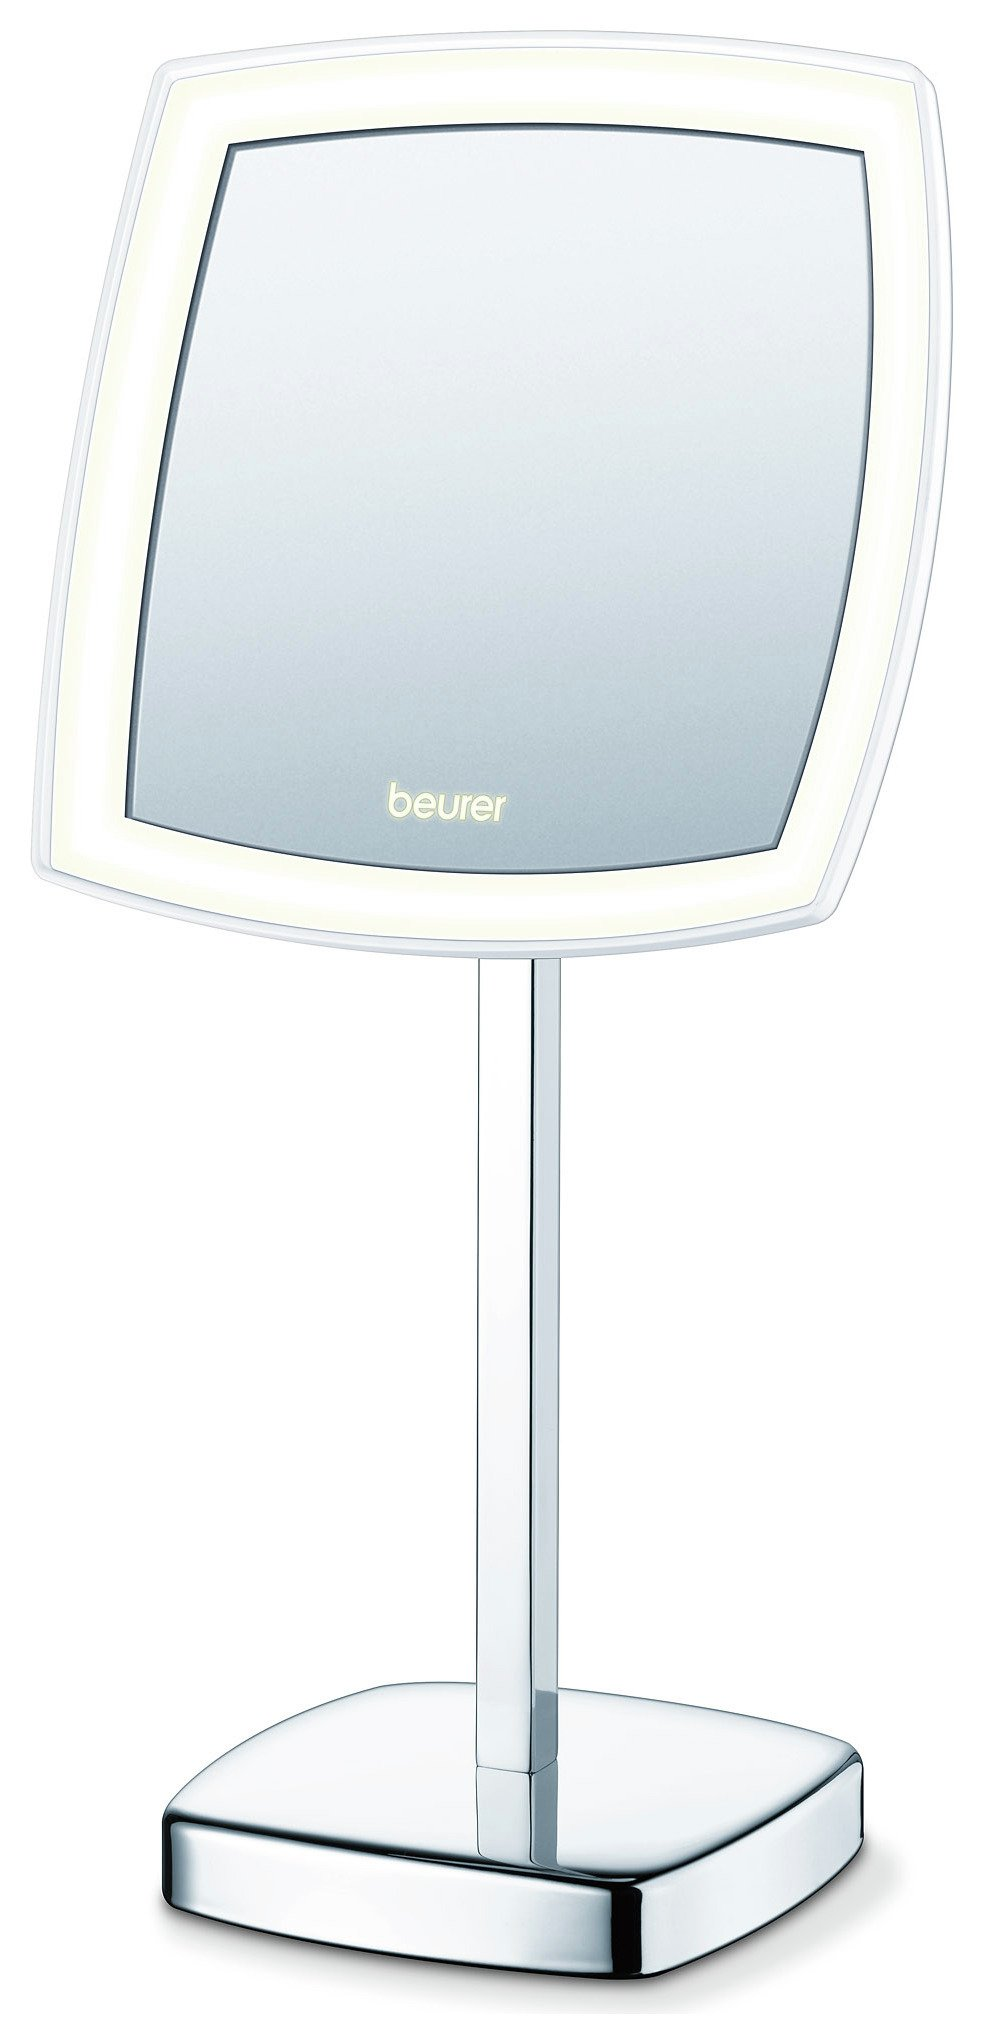 Image of Beurer BS99 Illuminated LED Free Standing Cosmetic Mirror.